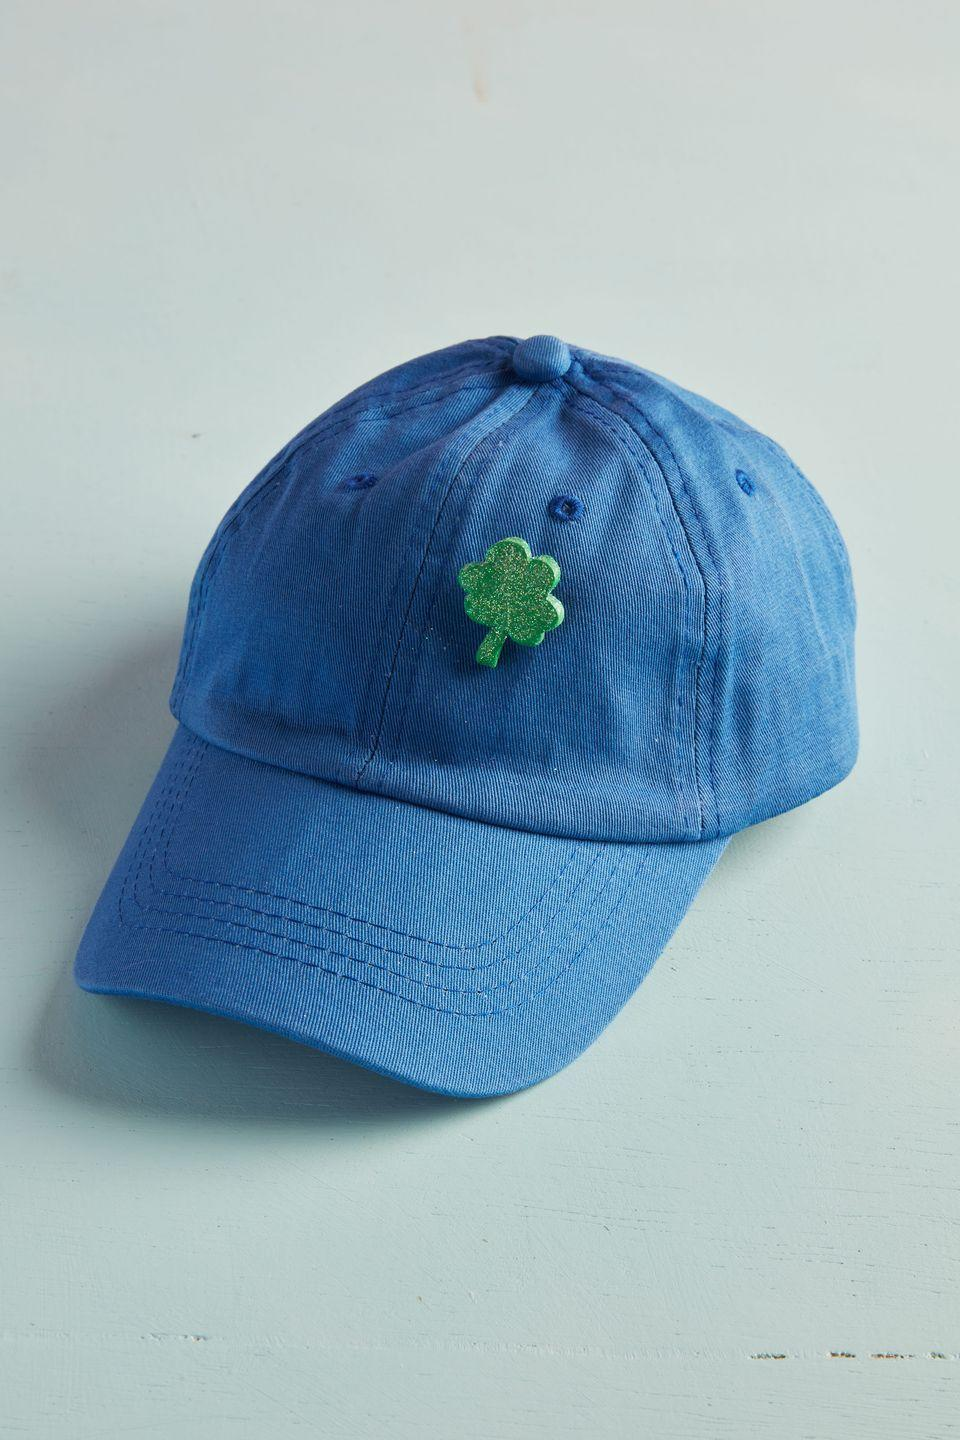 """<p>Proudly display your Irish pride with this DIY clover pin. <br><strong><br>To make:</strong> Roll out <a href=""""https://www.michaels.com/2oz-sculpey-iii-oven-bake-clay/M10132638.html"""" rel=""""nofollow noopener"""" target=""""_blank"""" data-ylk=""""slk:green oven-bake clay"""" class=""""link rapid-noclick-resp"""">green oven-bake clay</a> to 3/8-inch thick. Cut out shape with a mini shamrock cookie cutter. Bake per manufacturer's instructions. When cool, brush a light layer of craft glue on the shamrock and sprinkle with <a href=""""https://www.amazon.com/Efavormart-Glitter-Shaker-Wedding-Centerpieces/dp/B07QH81LG5/ref=sr_1_2"""" rel=""""nofollow noopener"""" target=""""_blank"""" data-ylk=""""slk:green glitter"""" class=""""link rapid-noclick-resp"""">green glitter</a>. Glue a <a href=""""https://www.amazon.com/Brooch-Safety-Pieces-Silver-Badges/dp/B07R7M5MTG/ref=sr_1_1"""" rel=""""nofollow noopener"""" target=""""_blank"""" data-ylk=""""slk:brooch pin"""" class=""""link rapid-noclick-resp"""">brooch pin</a> on the back. <br></p><p><a class=""""link rapid-noclick-resp"""" href=""""https://www.amazon.com/Boao-Patricks-Shamrock-Cutters-Stainless/dp/B083PQ2X1R/ref=sr_1_8?tag=syn-yahoo-20&ascsubtag=%5Bartid%7C10050.g.4035%5Bsrc%7Cyahoo-us"""" rel=""""nofollow noopener"""" target=""""_blank"""" data-ylk=""""slk:SHOP COOKIE CUTTERS"""">SHOP COOKIE CUTTERS</a></p>"""